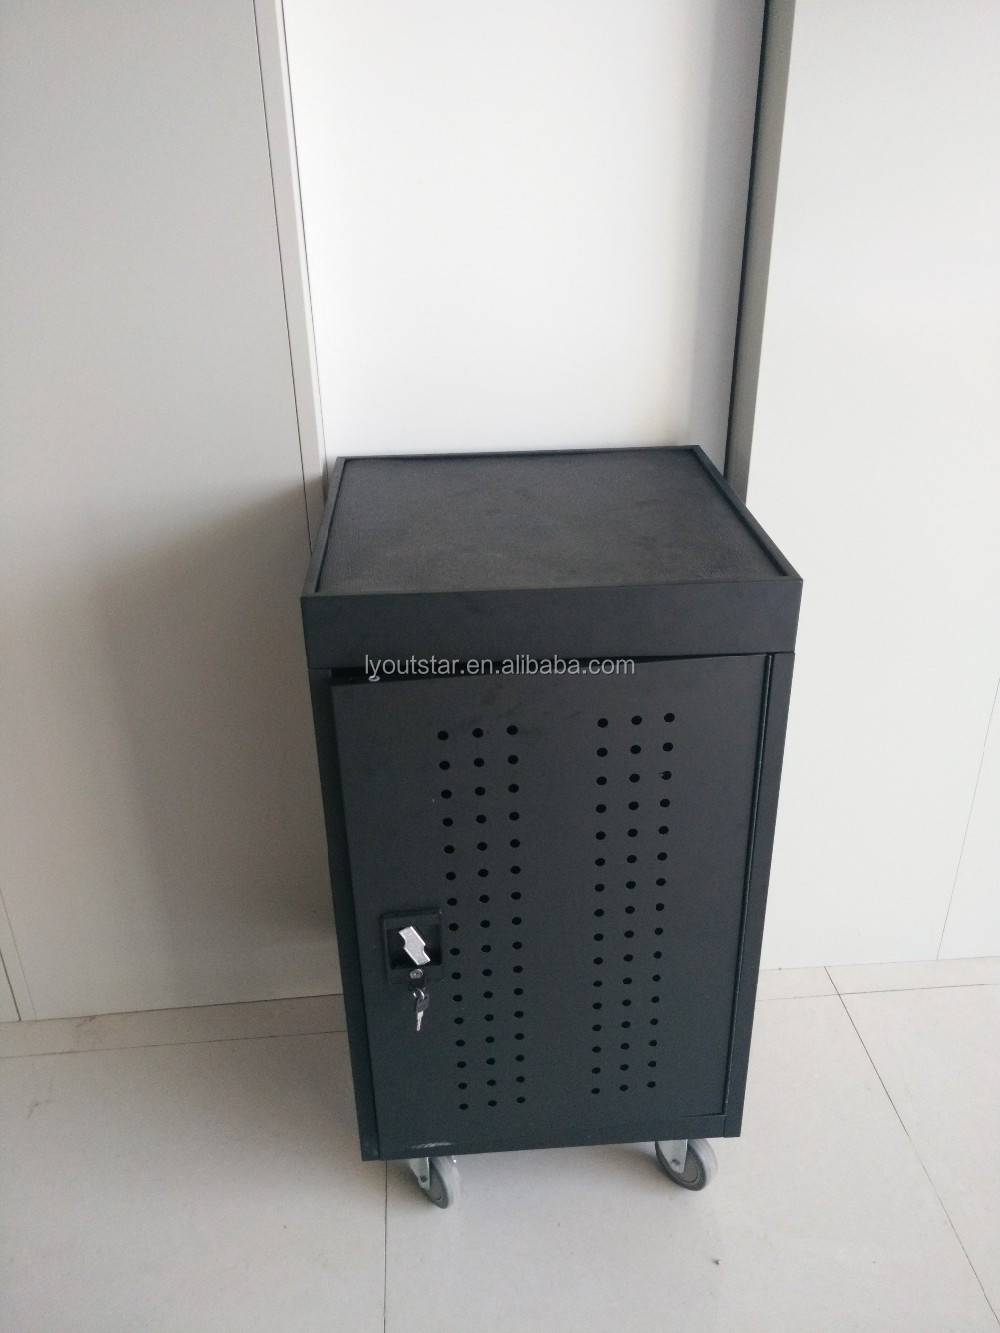 High Quality Metal Mobile Pedestal Single door Air mesh movable shelves file storage cabinet